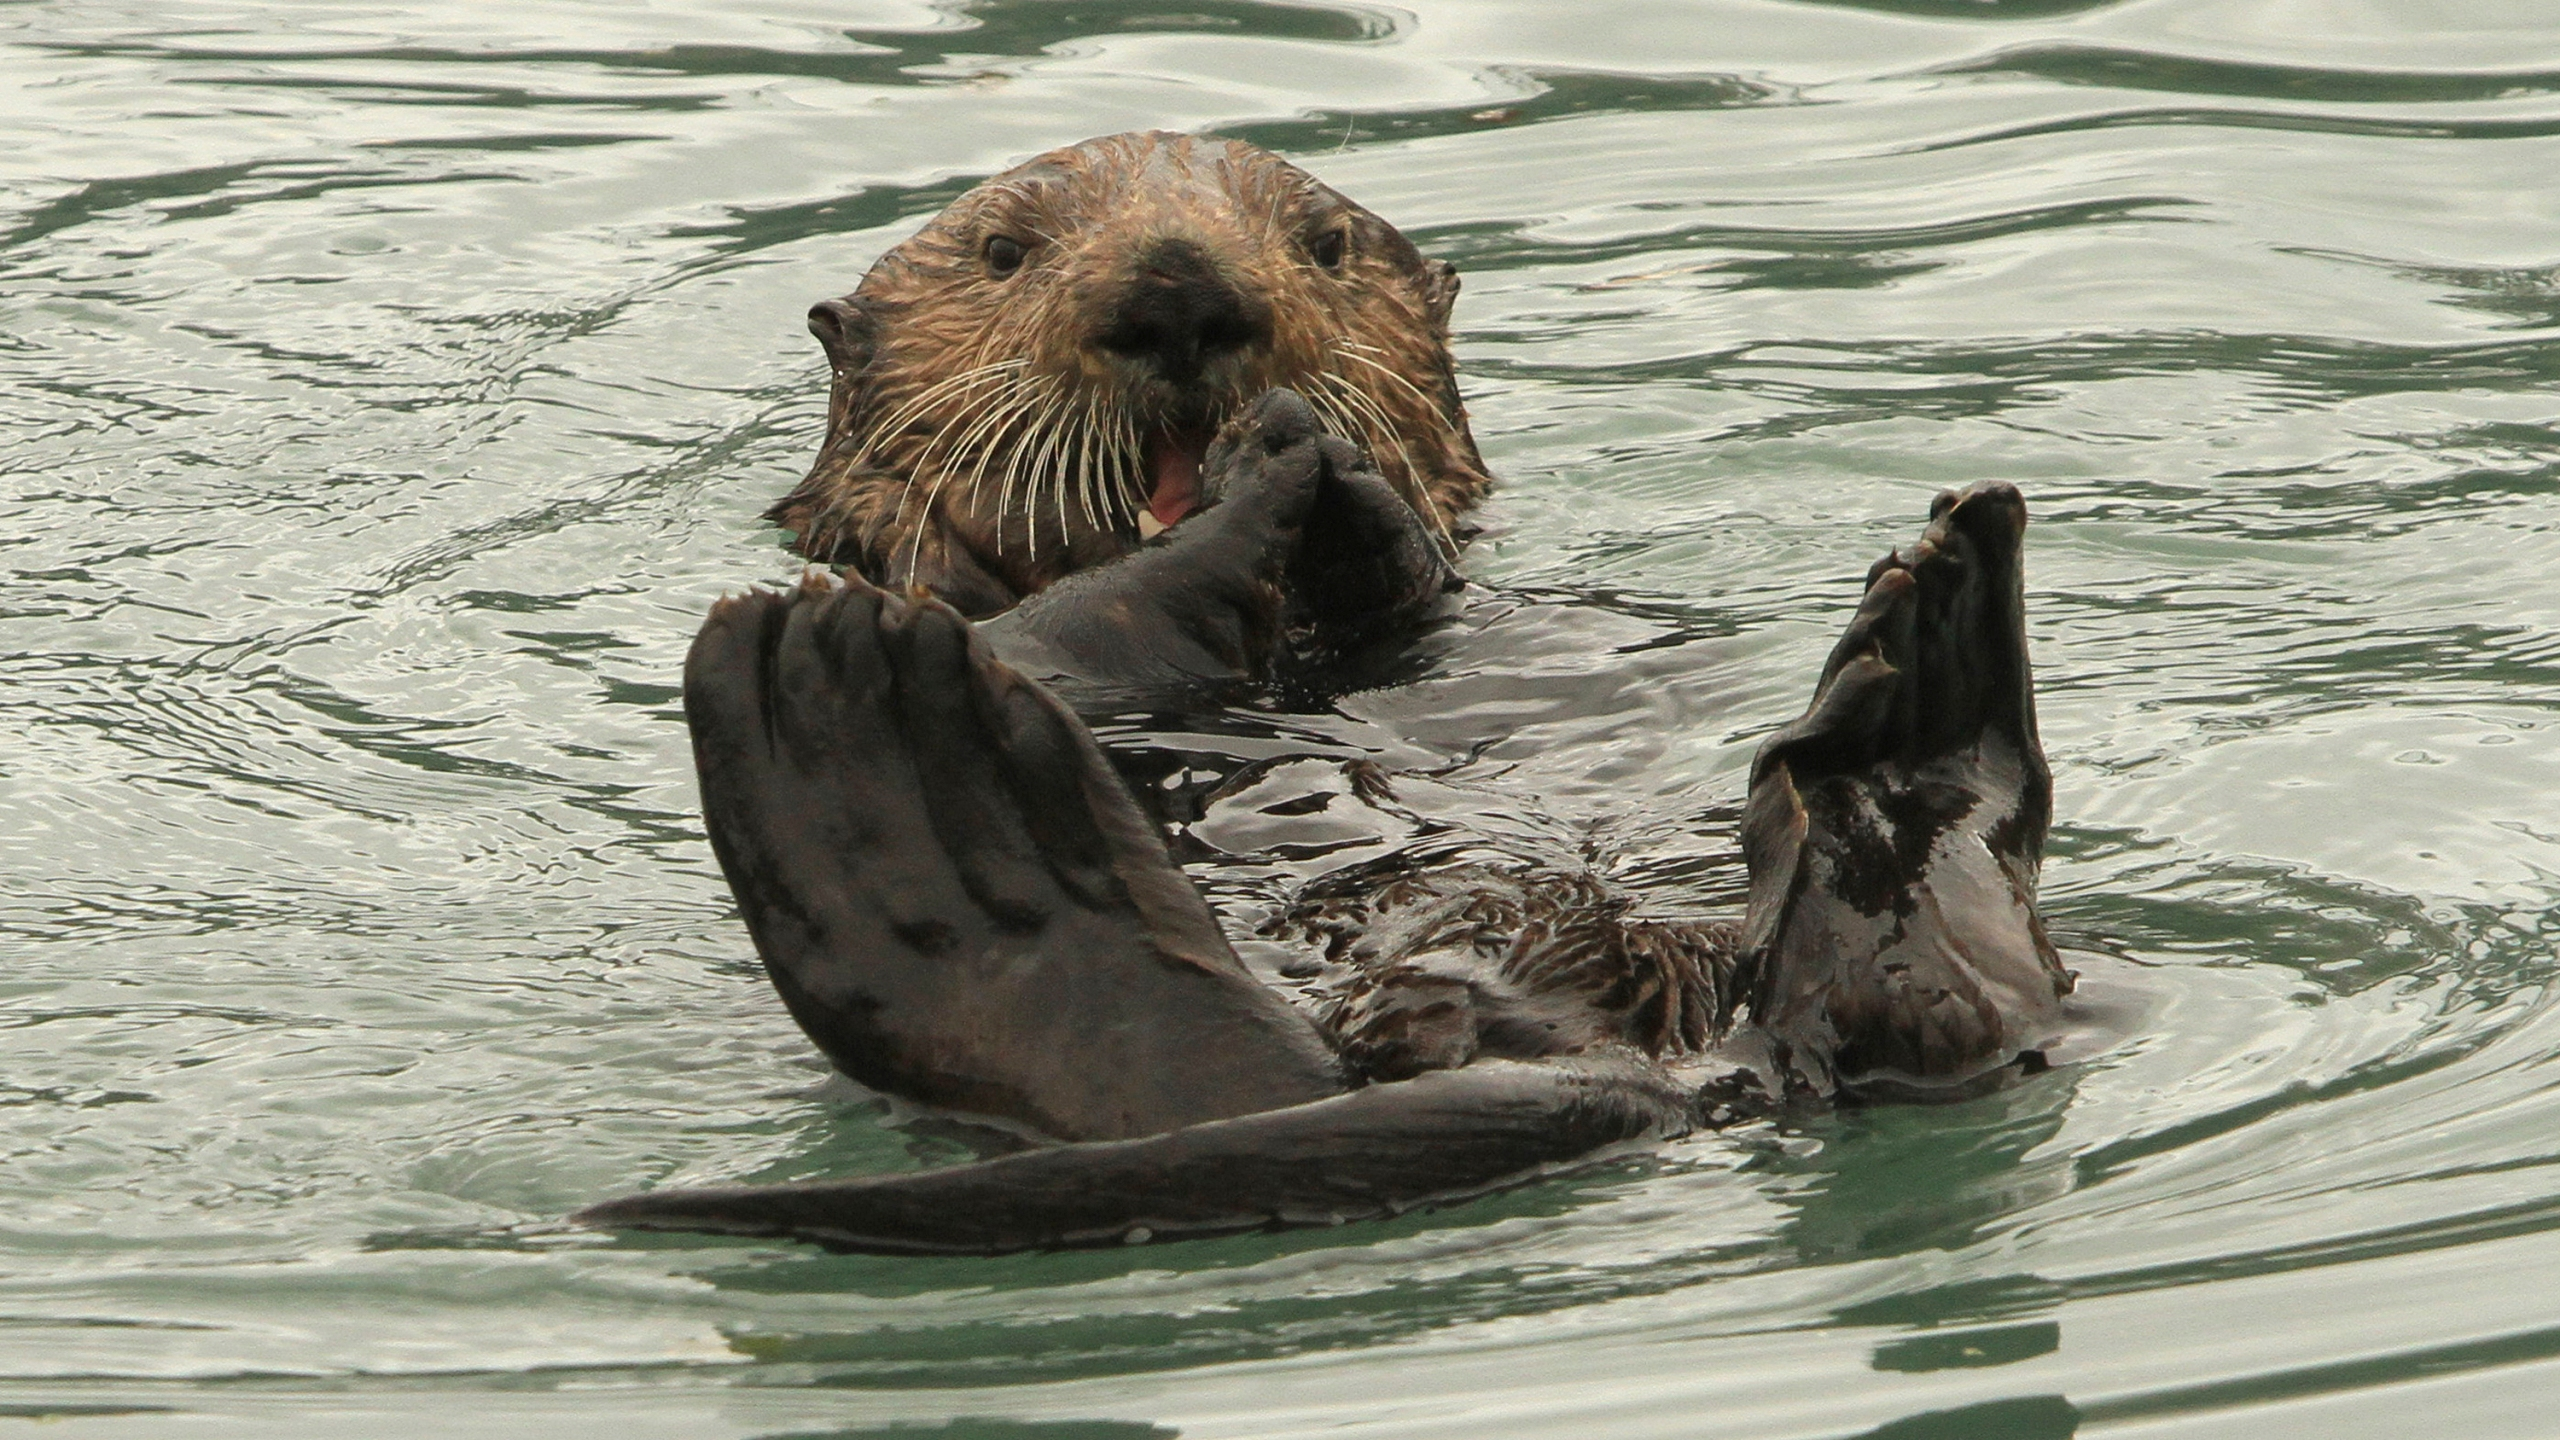 Sea_Otters_Alaska_Seafood_67199-159532.jpg38395991